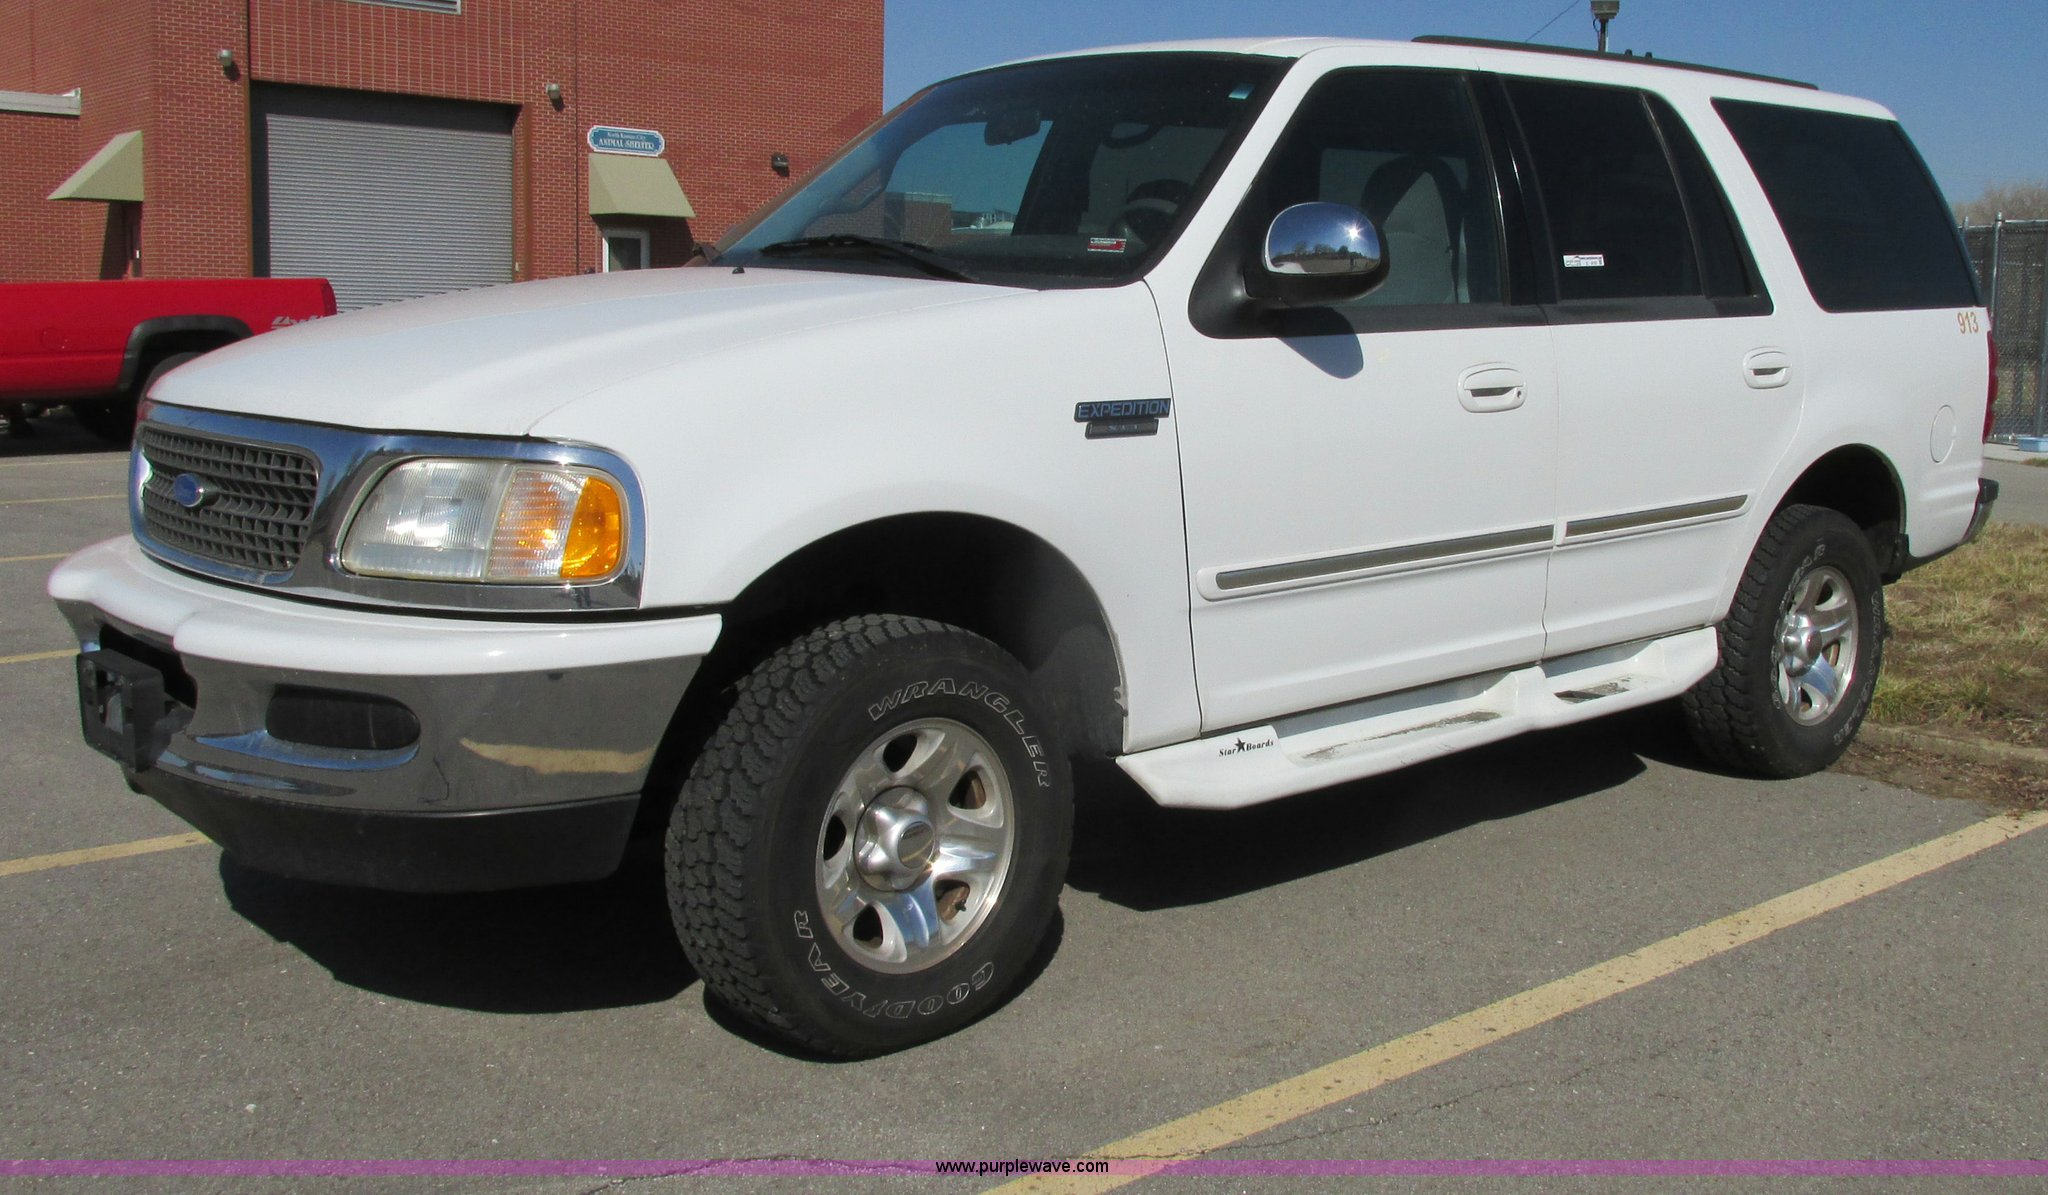 Z9197 image for item z9197 1997 ford expedition